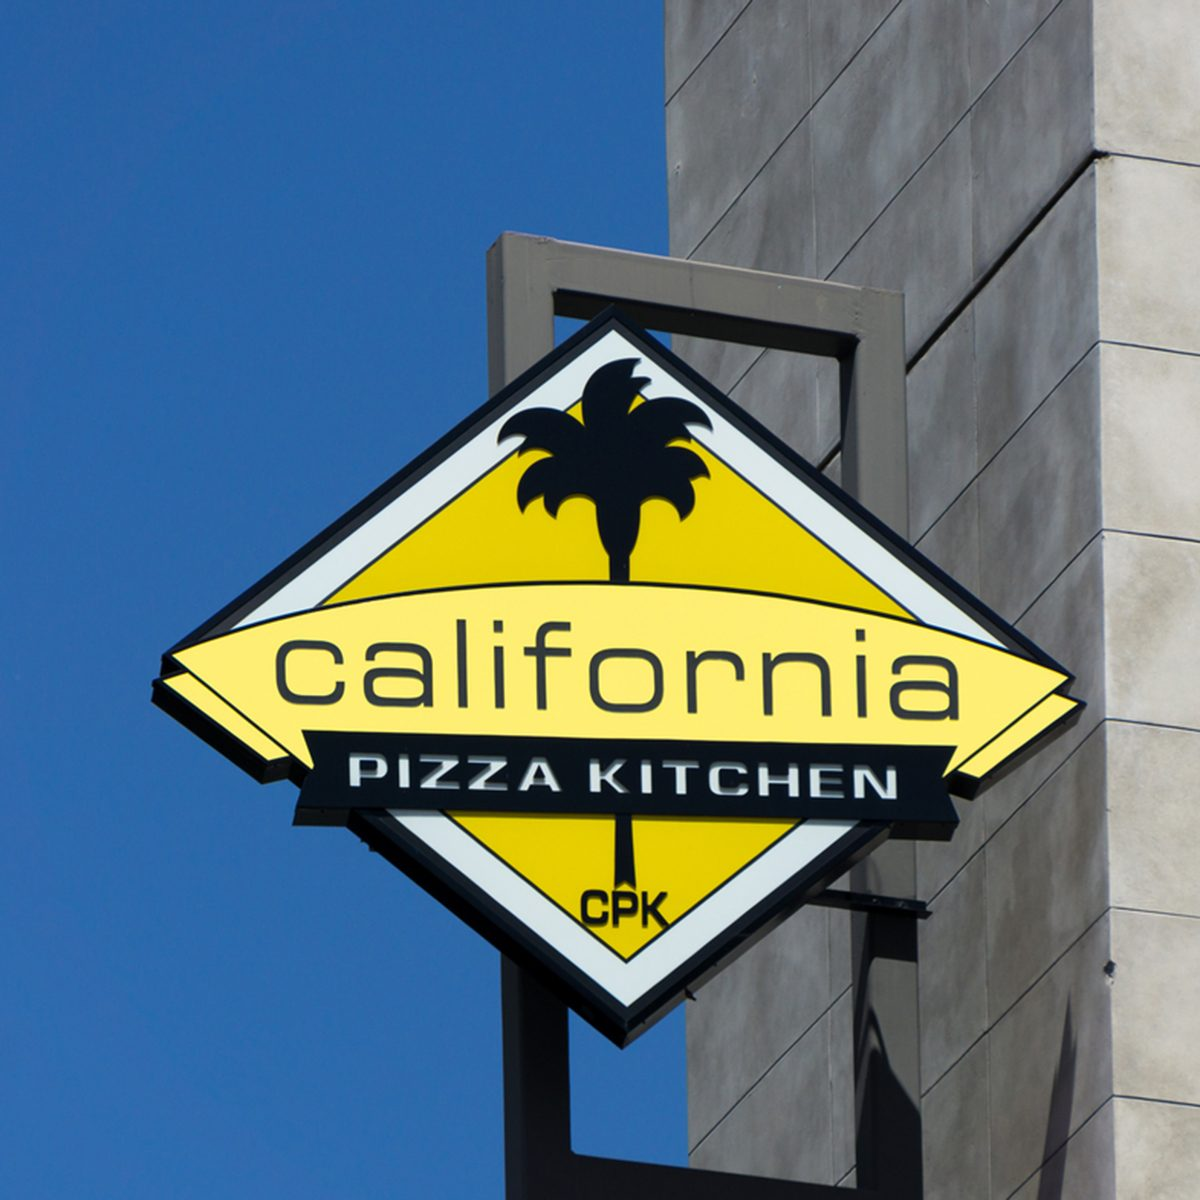 California Pizza Kitchen sign and logo.